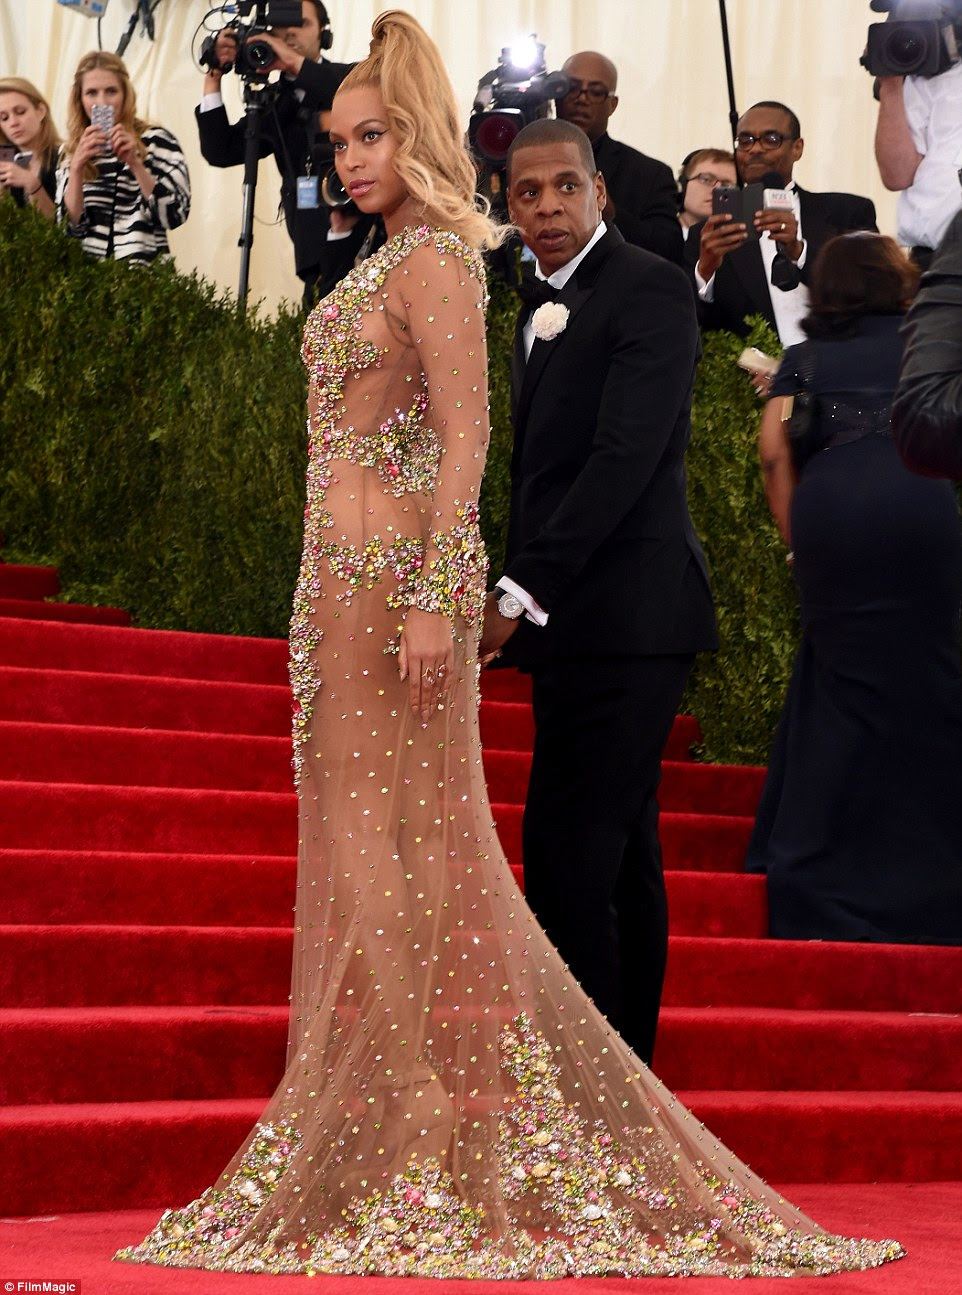 Fashionably late: Beyonce and Jay Z were the last guests to arrive, but they certainly made up for lost time